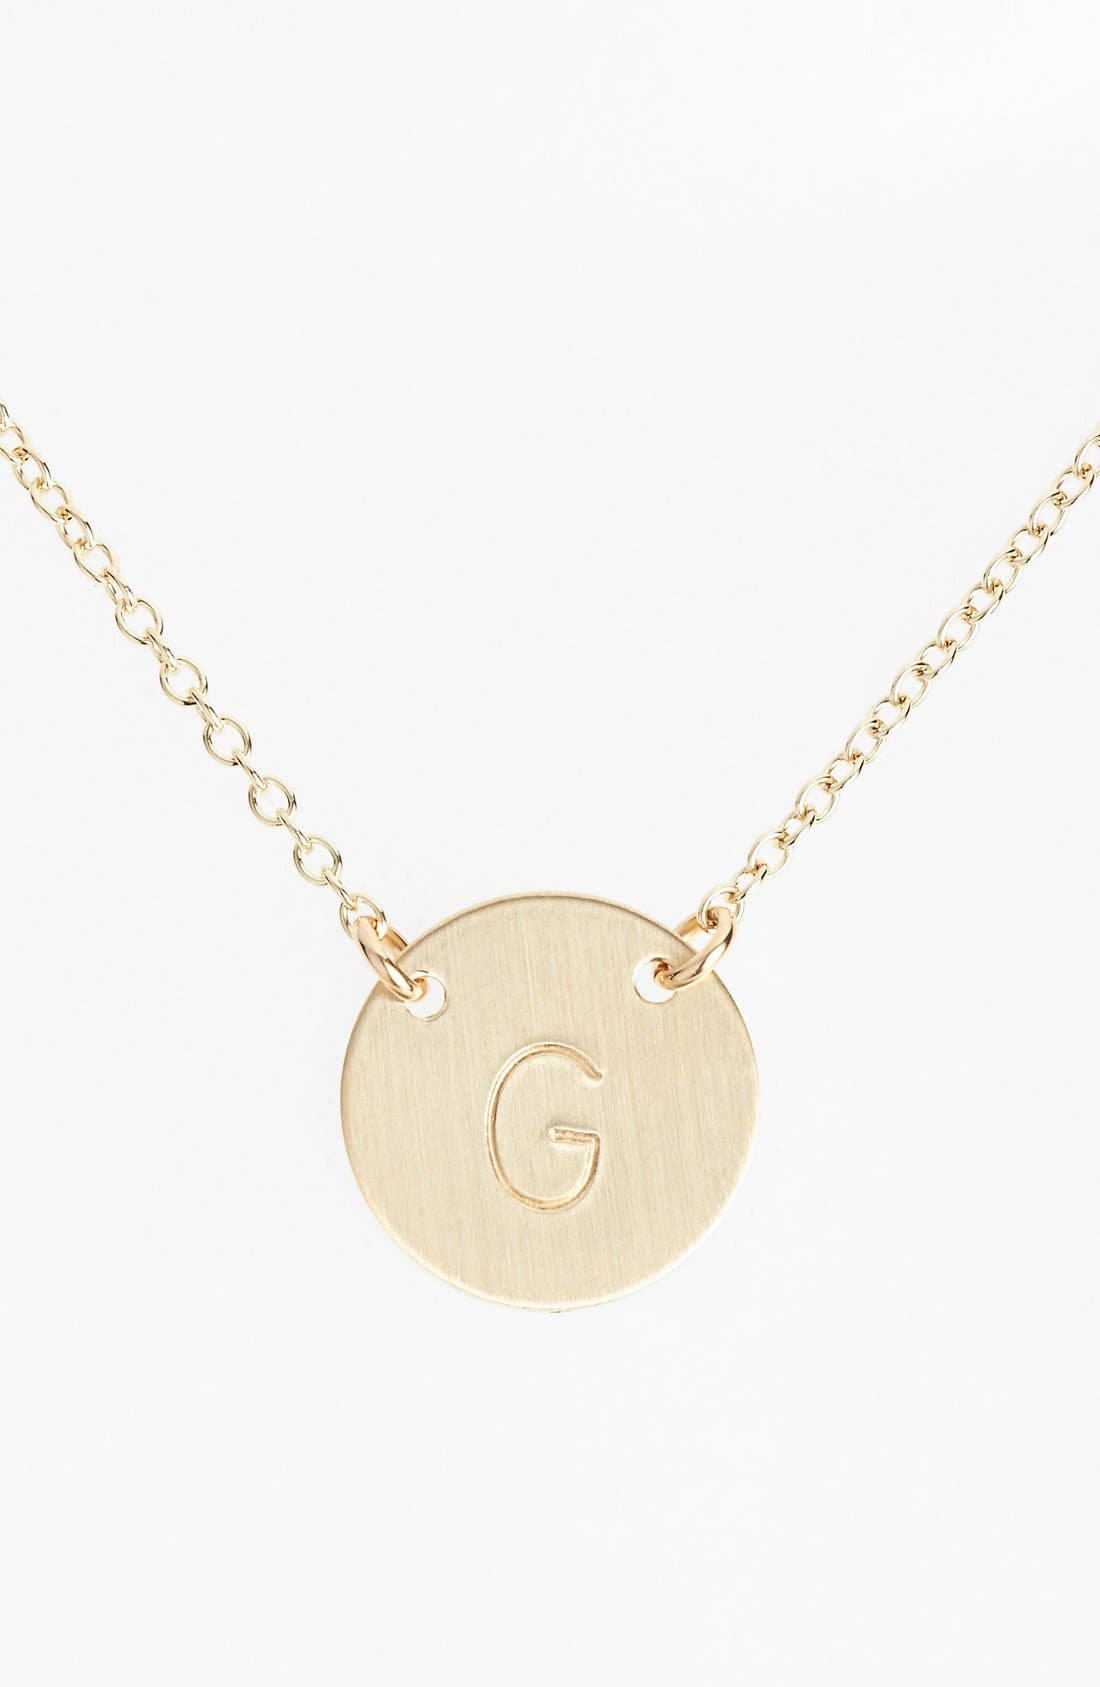 Main Image - Nashelle 14k-Gold Fill Anchored Initial Disc Necklace